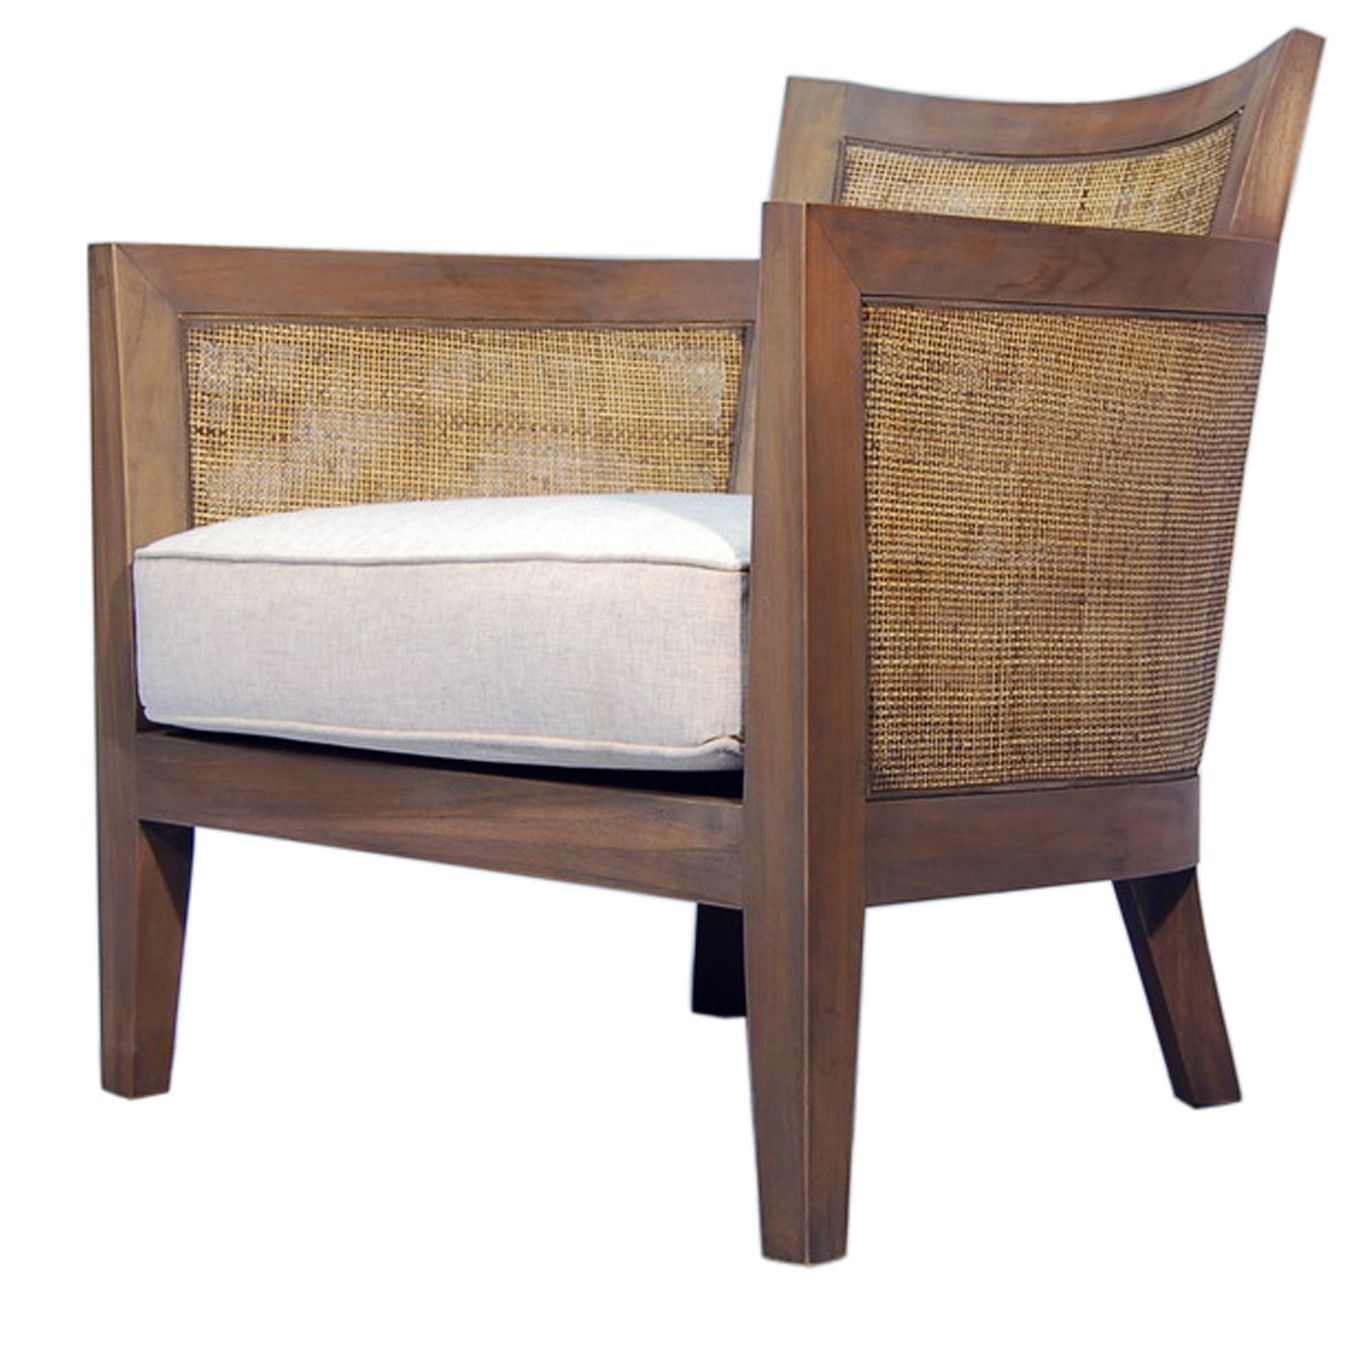 jeffan mumba fabric lounge chair very similar to the crate and barrel blake chair